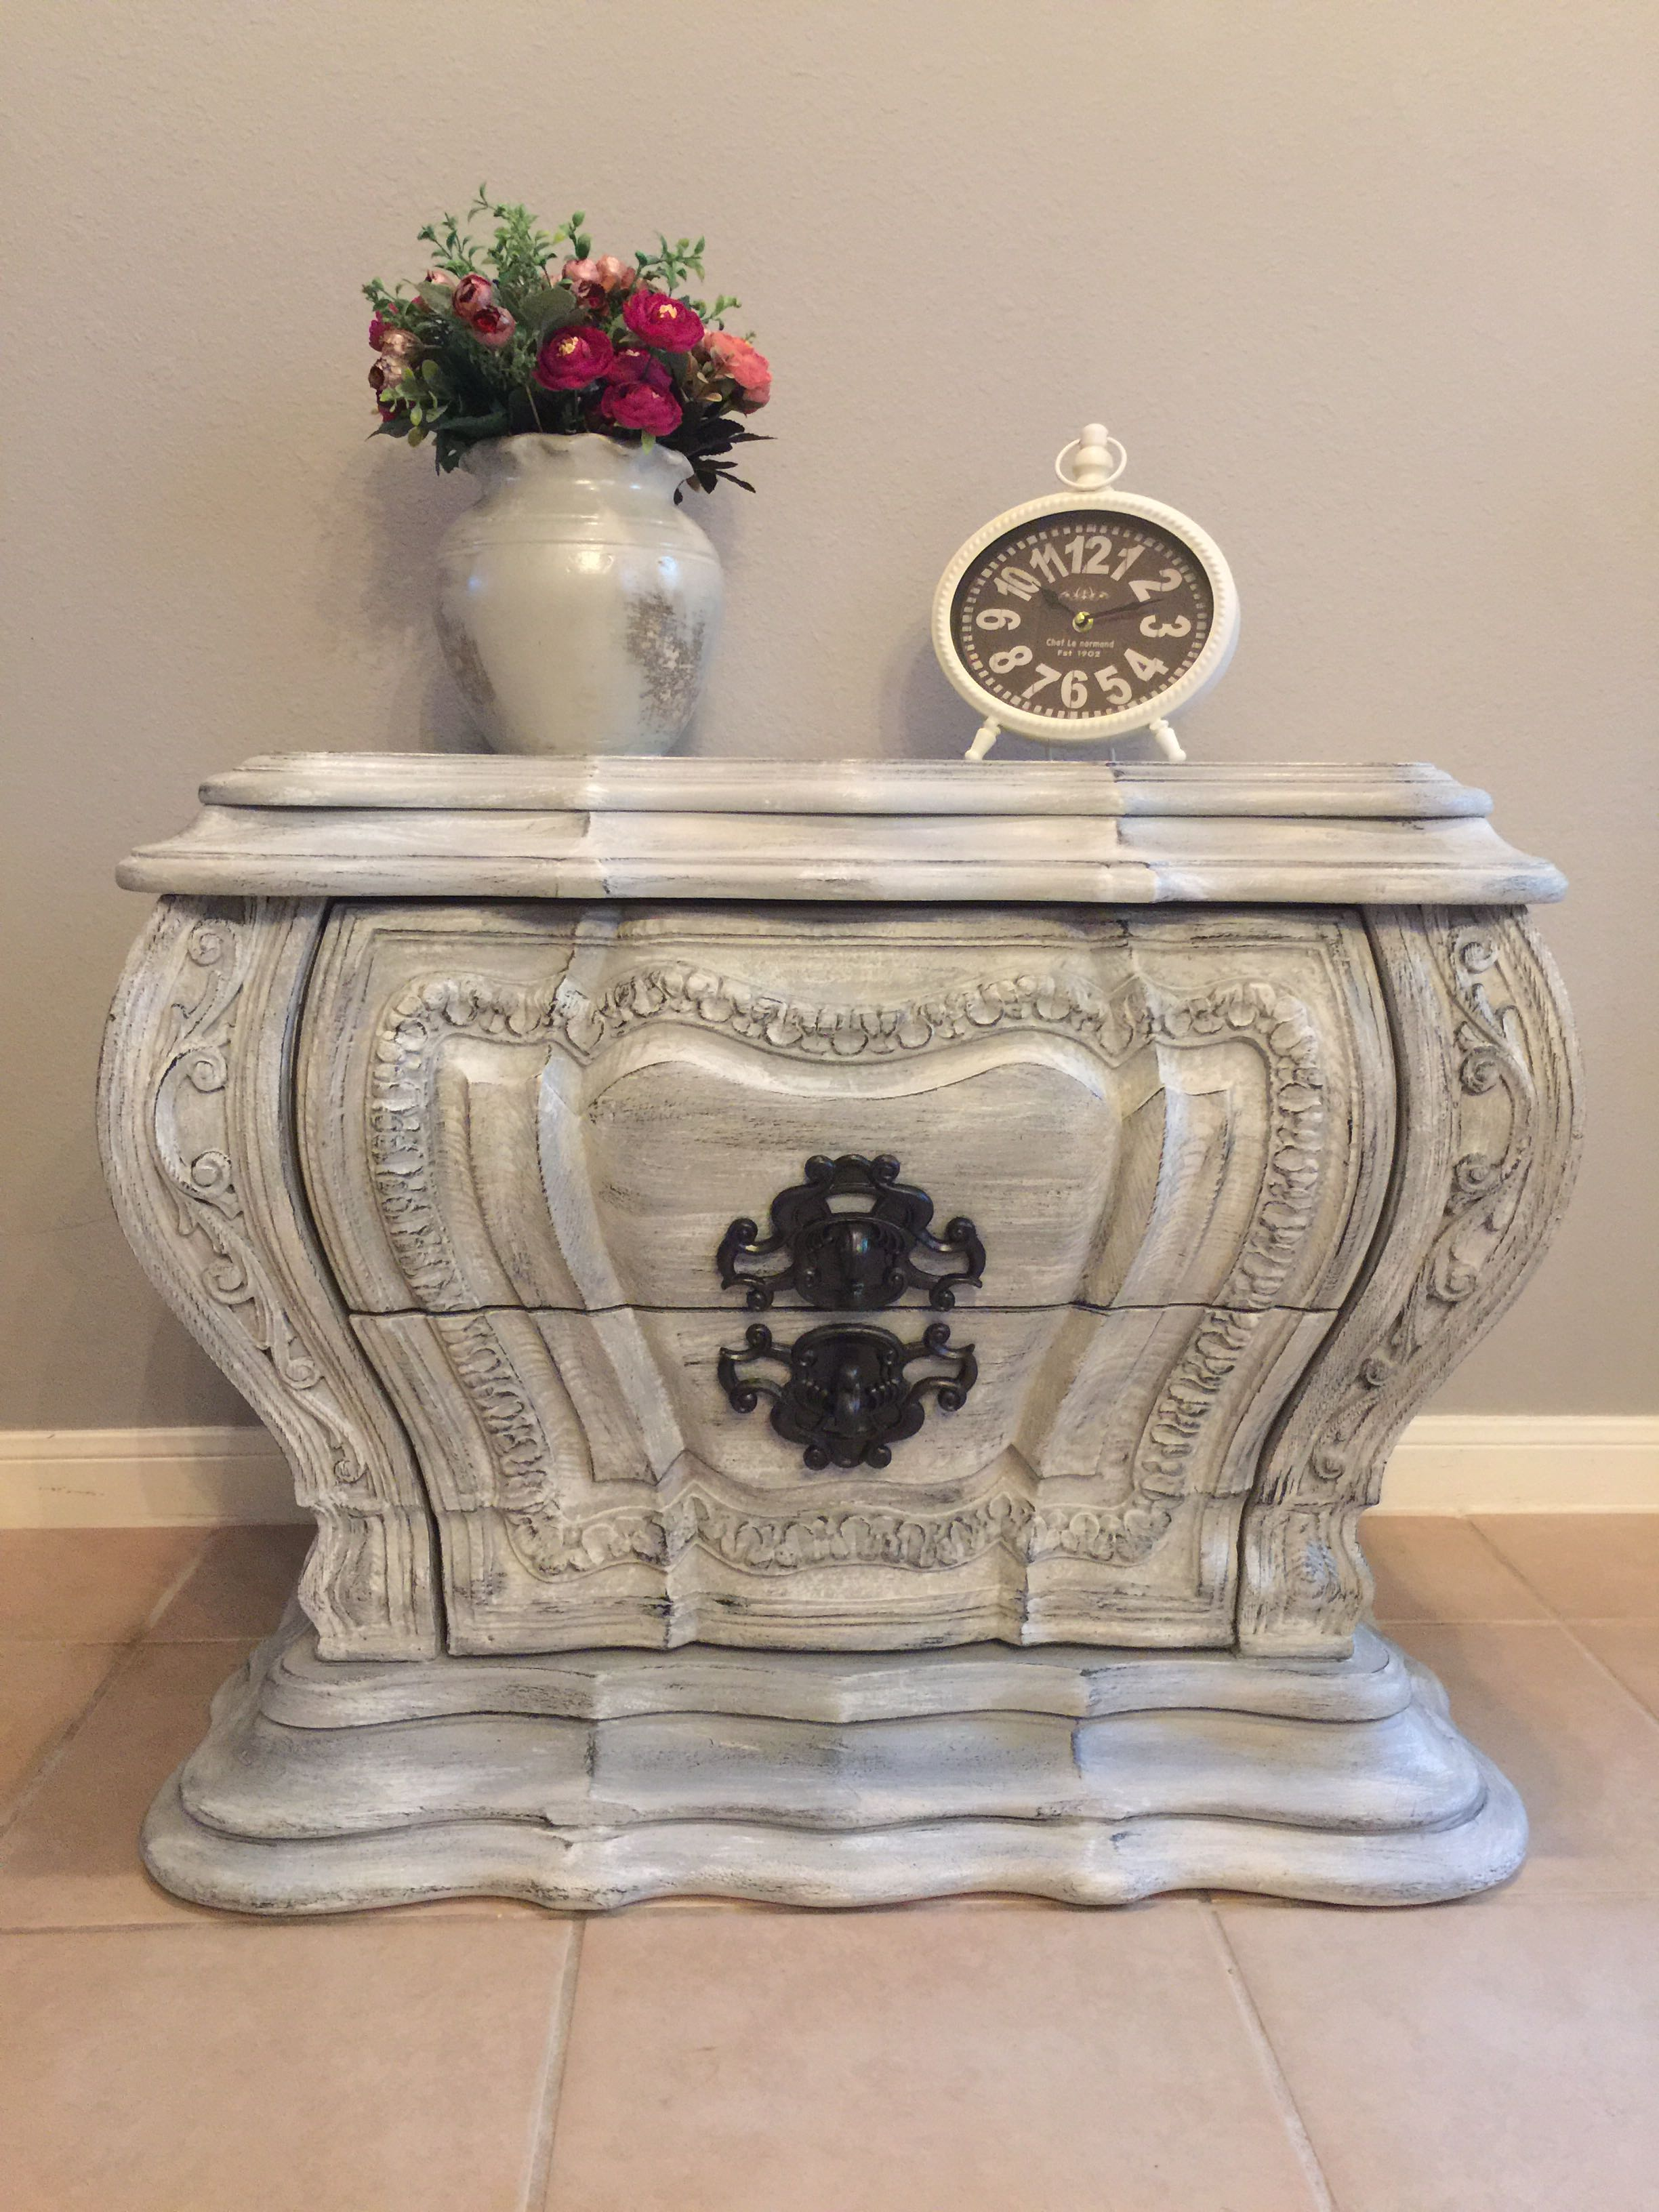 Refinished ornate solid wood accent piece